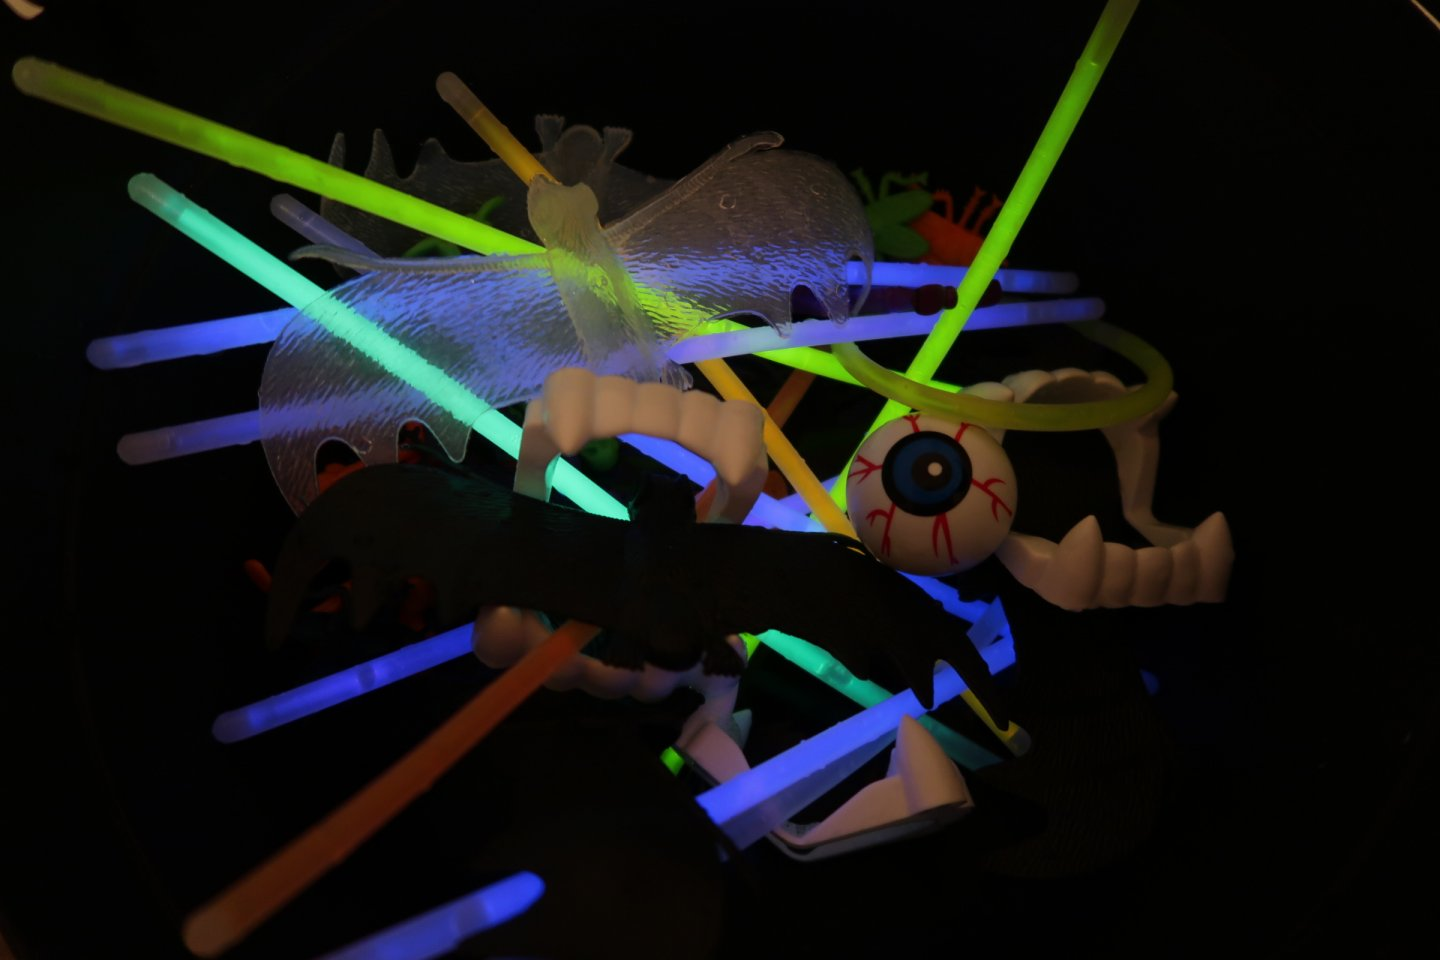 A collection of halloween props and glow sticks.